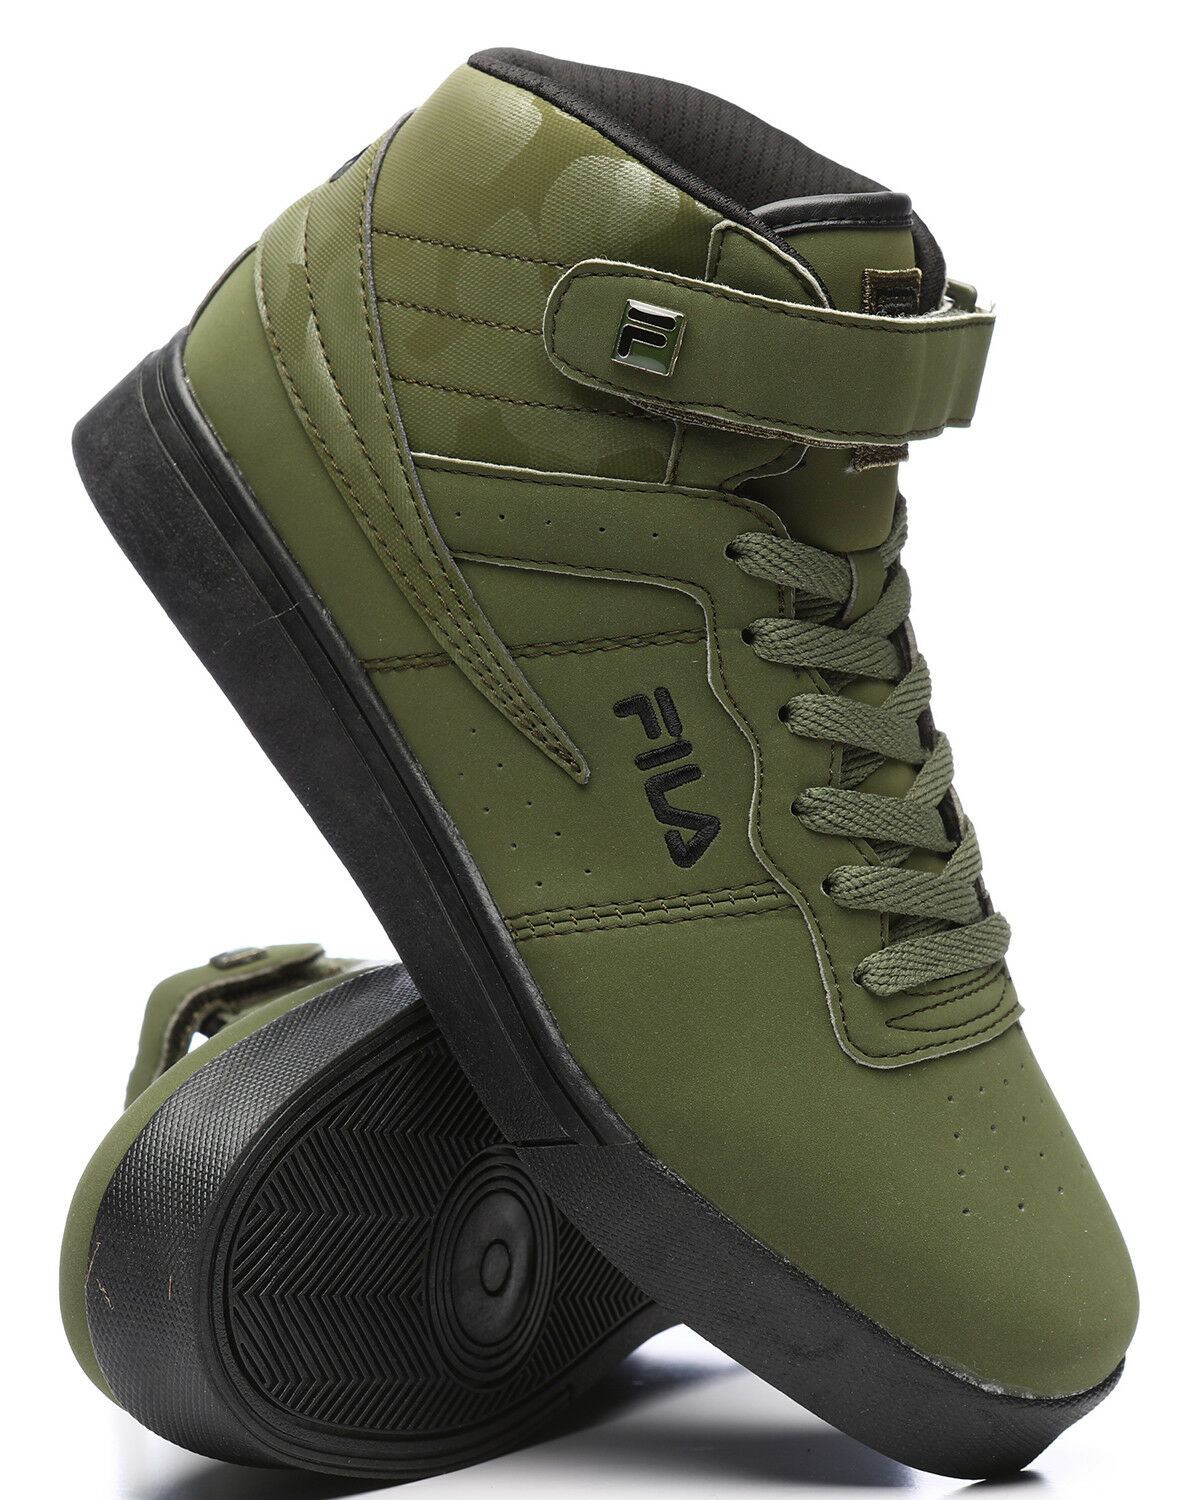 NEW 2018 MEN'S FILA VULC 13 MID PLUS GREEN BLACK CAMO CLASSIC HIGH TOP SNEAKERS